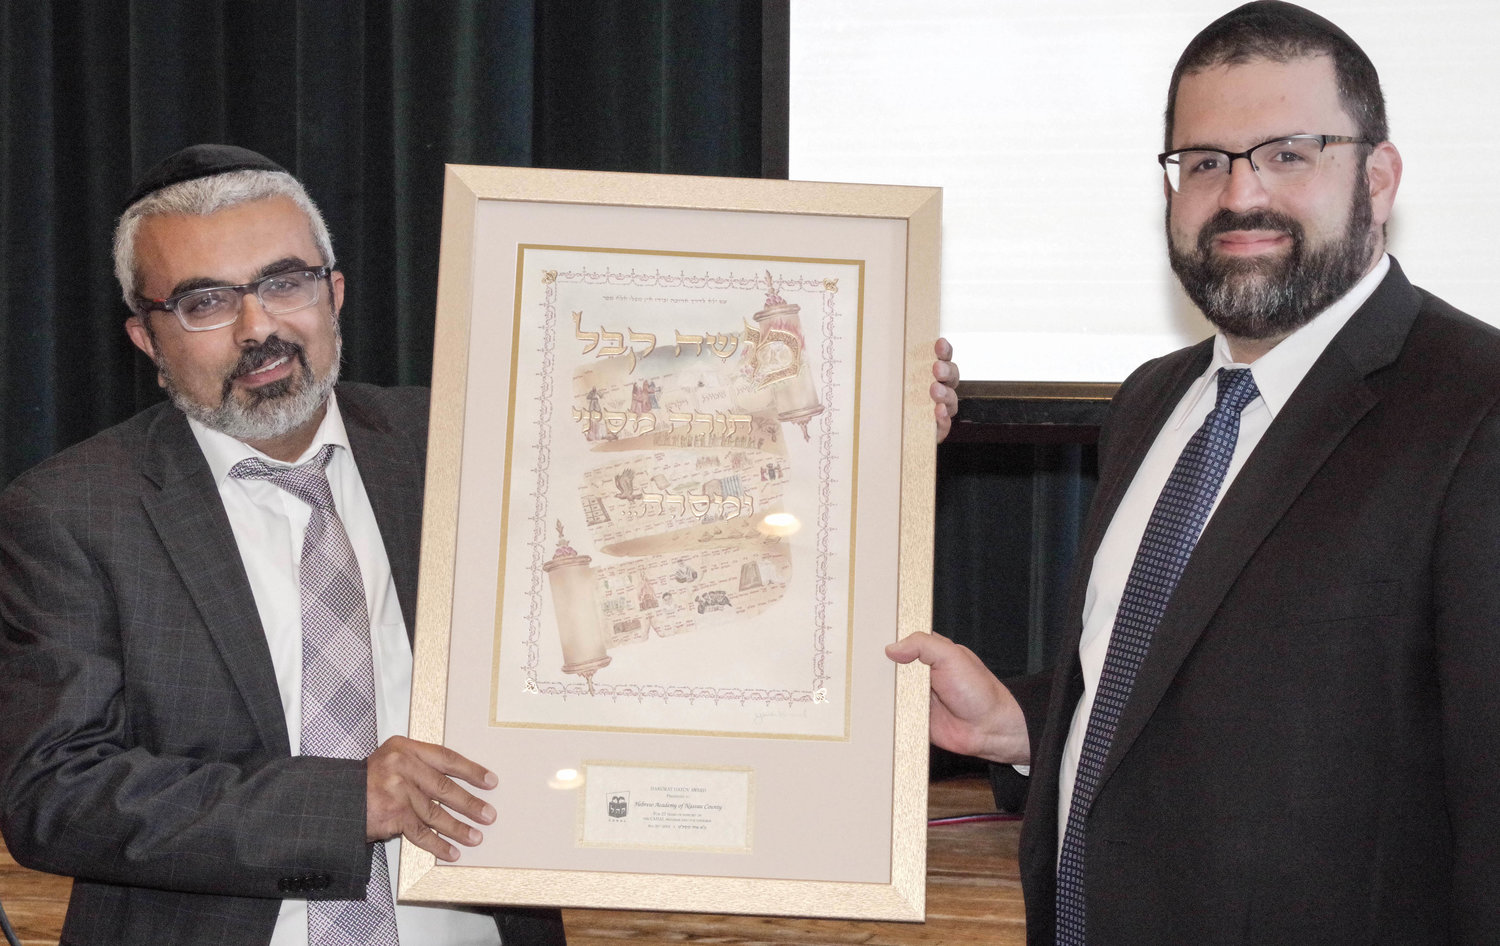 Rabbi Elon Soniker, rav of Congregation Anshei Sholom, presented an award to the Hebrew Academy of Nassau County in recognition of  its partnership with CAHAL over 27 years.